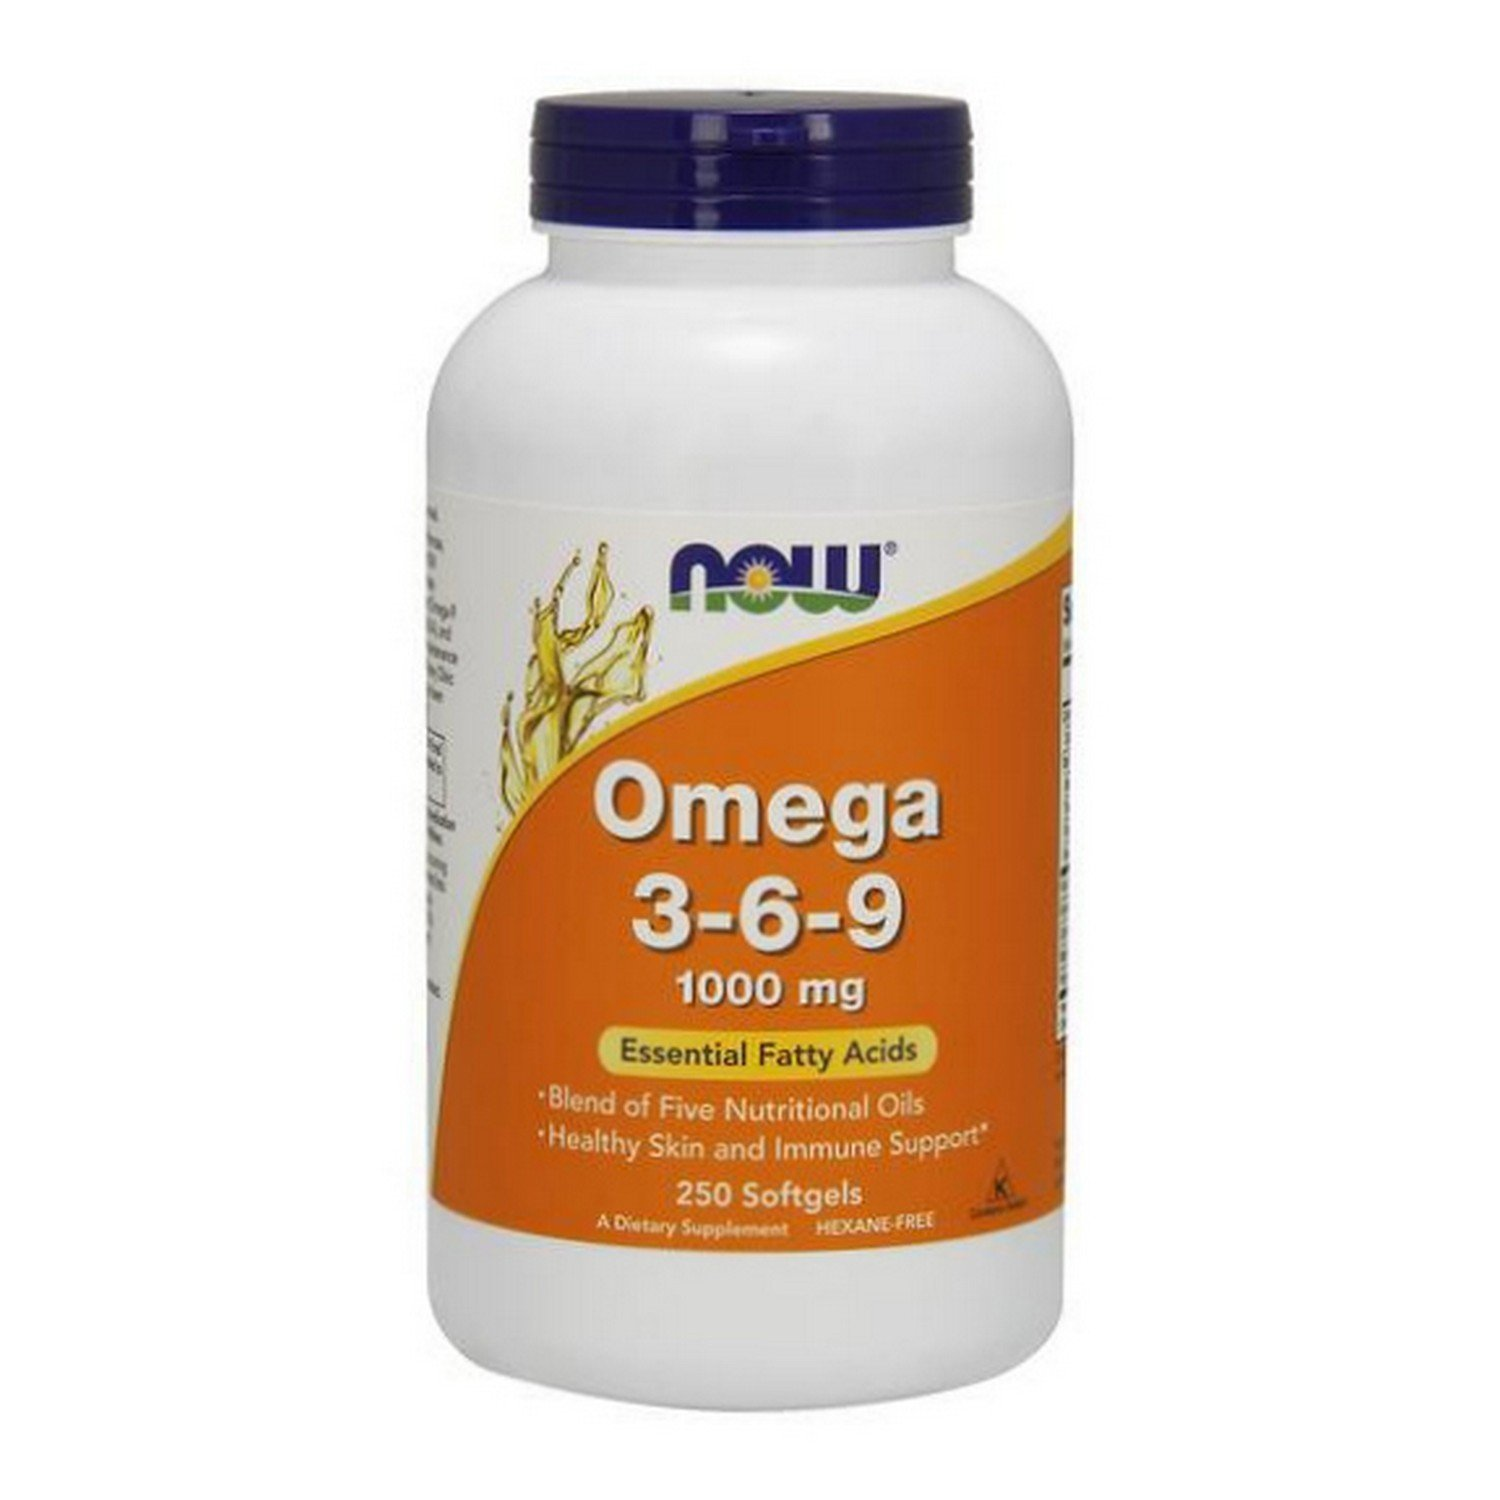 Now Foods Omega 369 Softgels 1000mg  250 Softgels